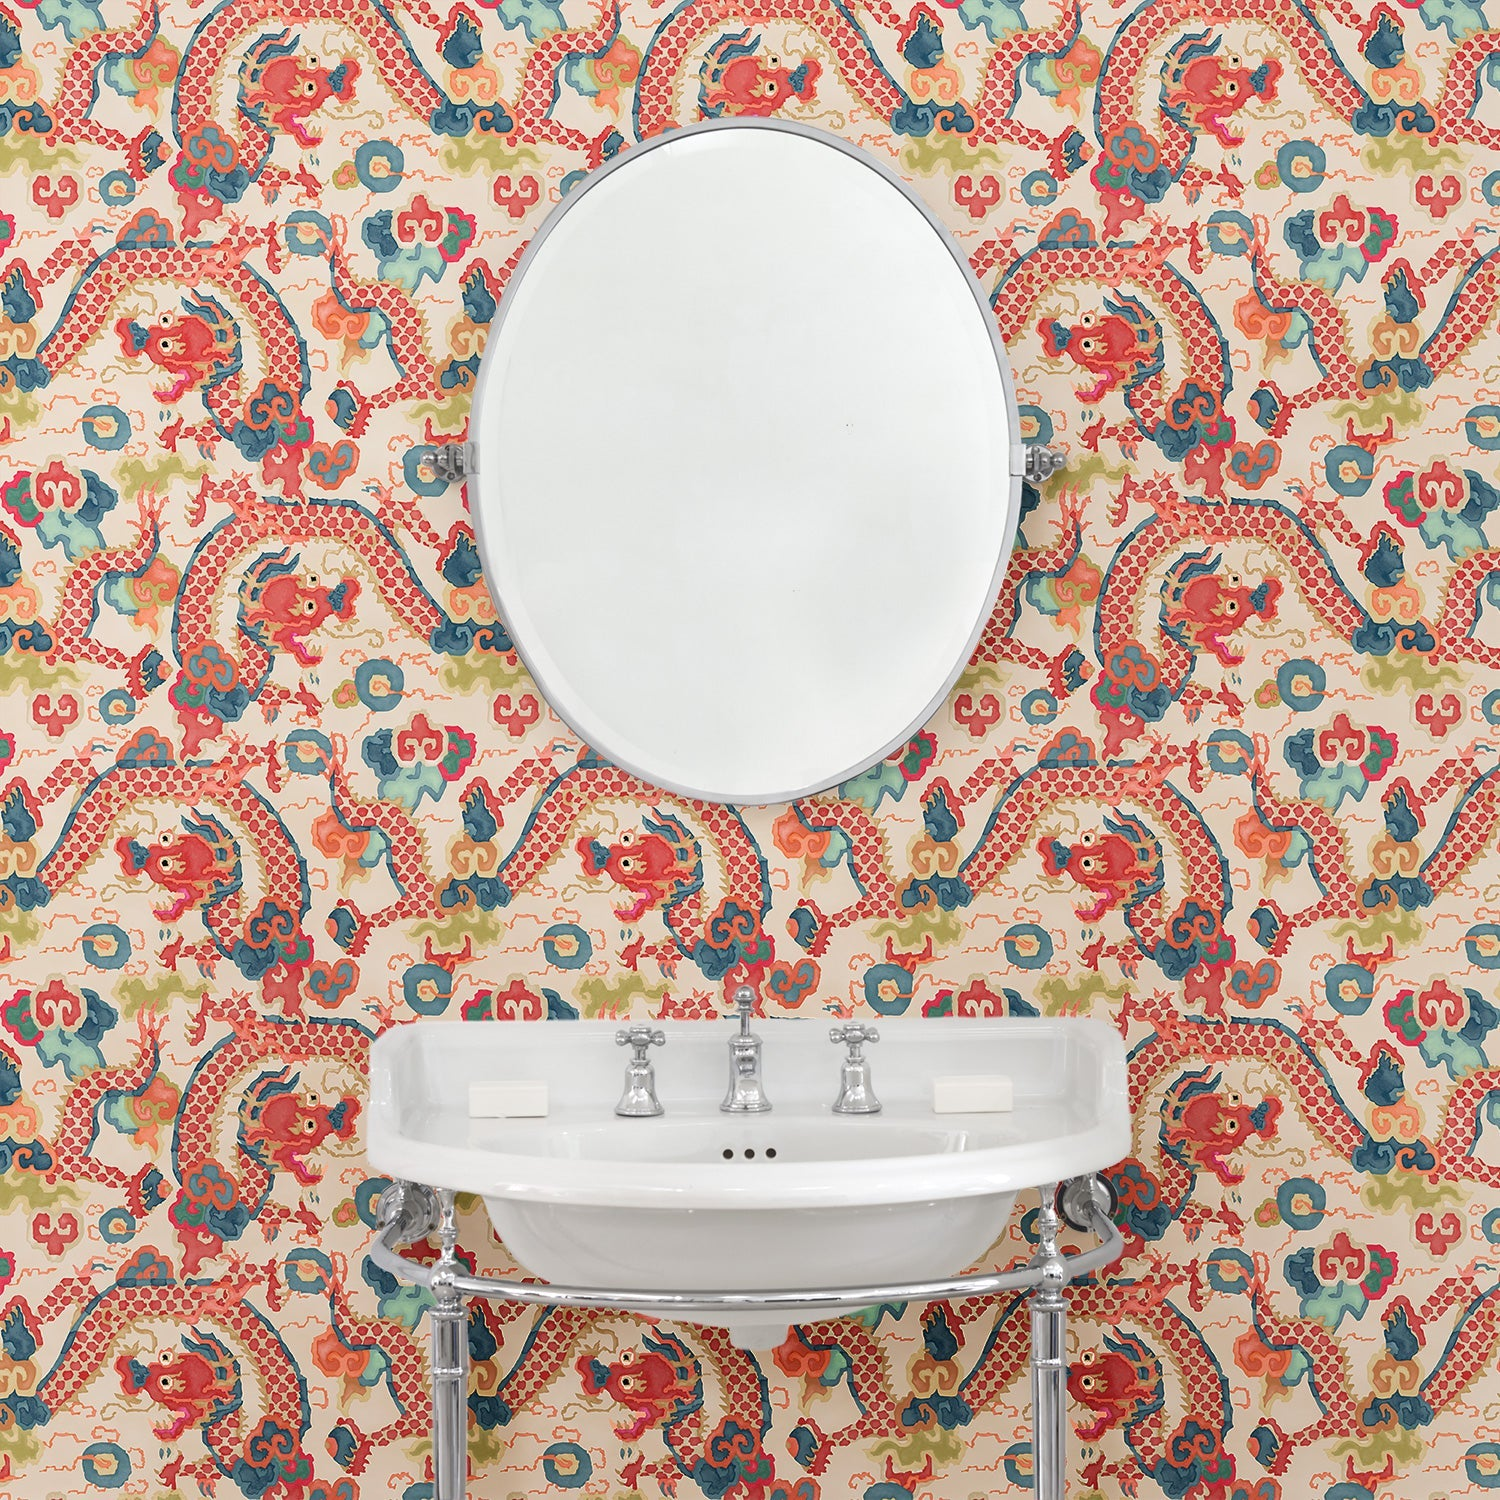 Bathroom with luxury designer wallpaper with dragon design